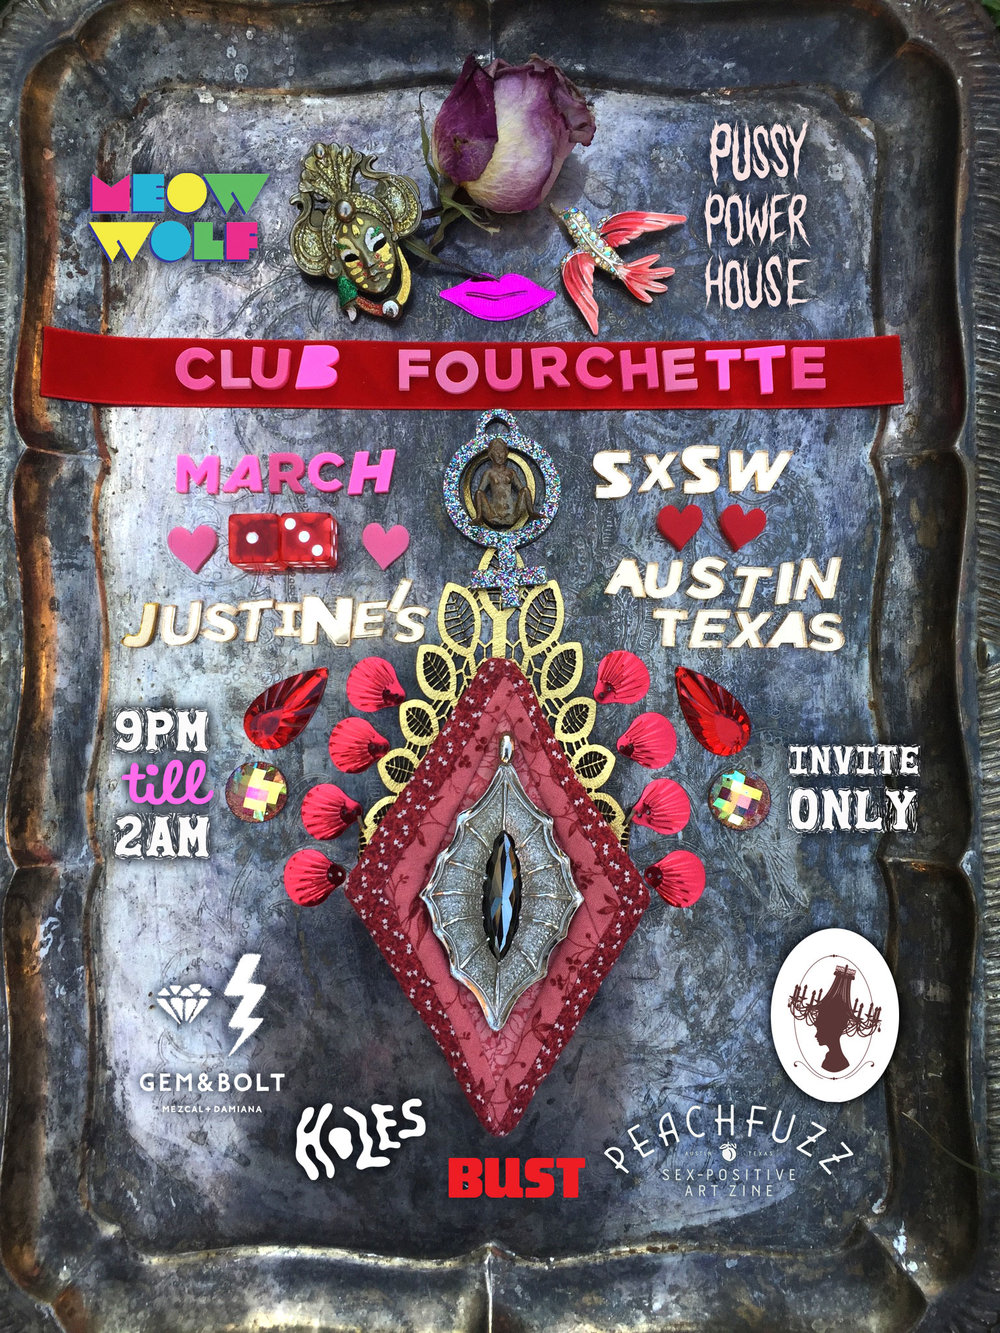 club_fourchette_poster_3-13-2018.jpg